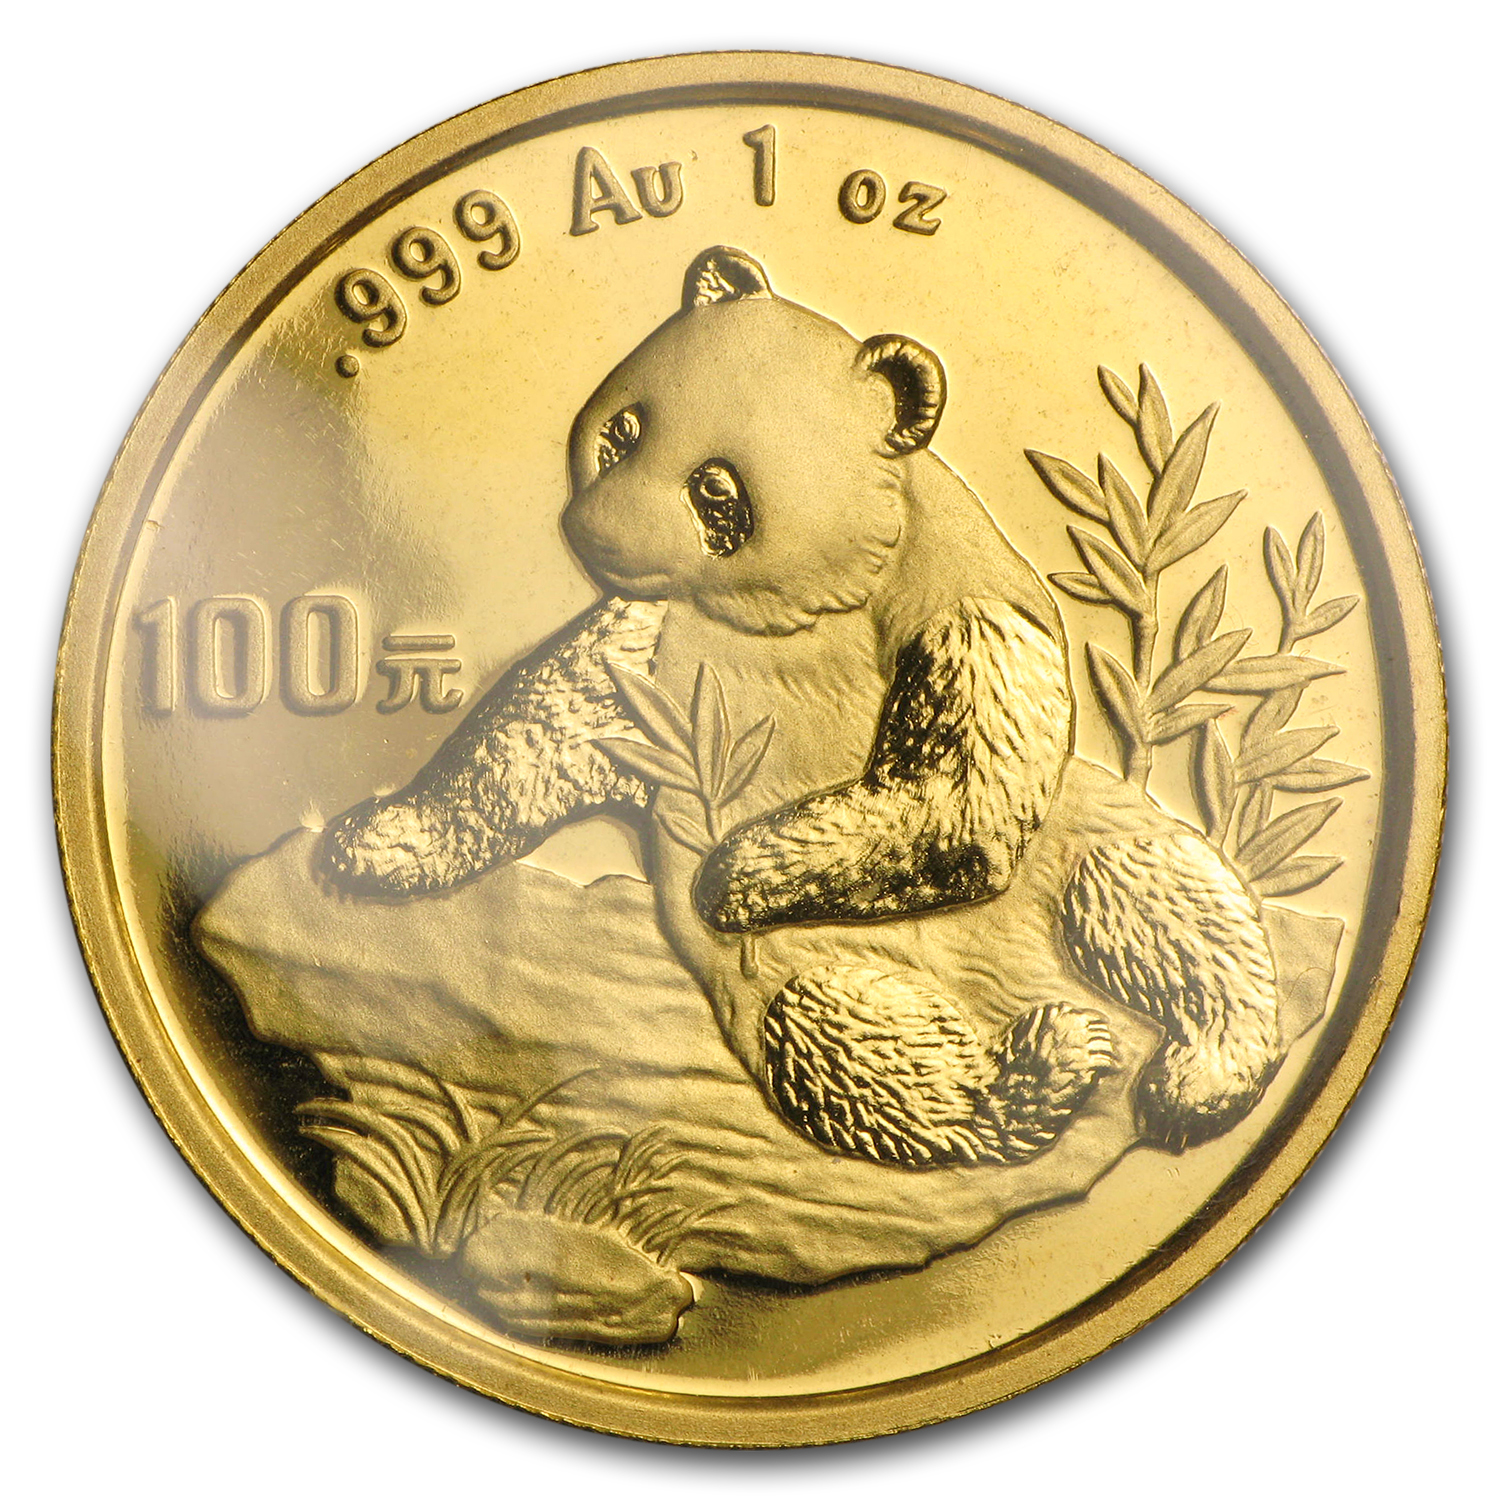 1998 1 oz Gold Chinese Panda - Small Date (Sealed)